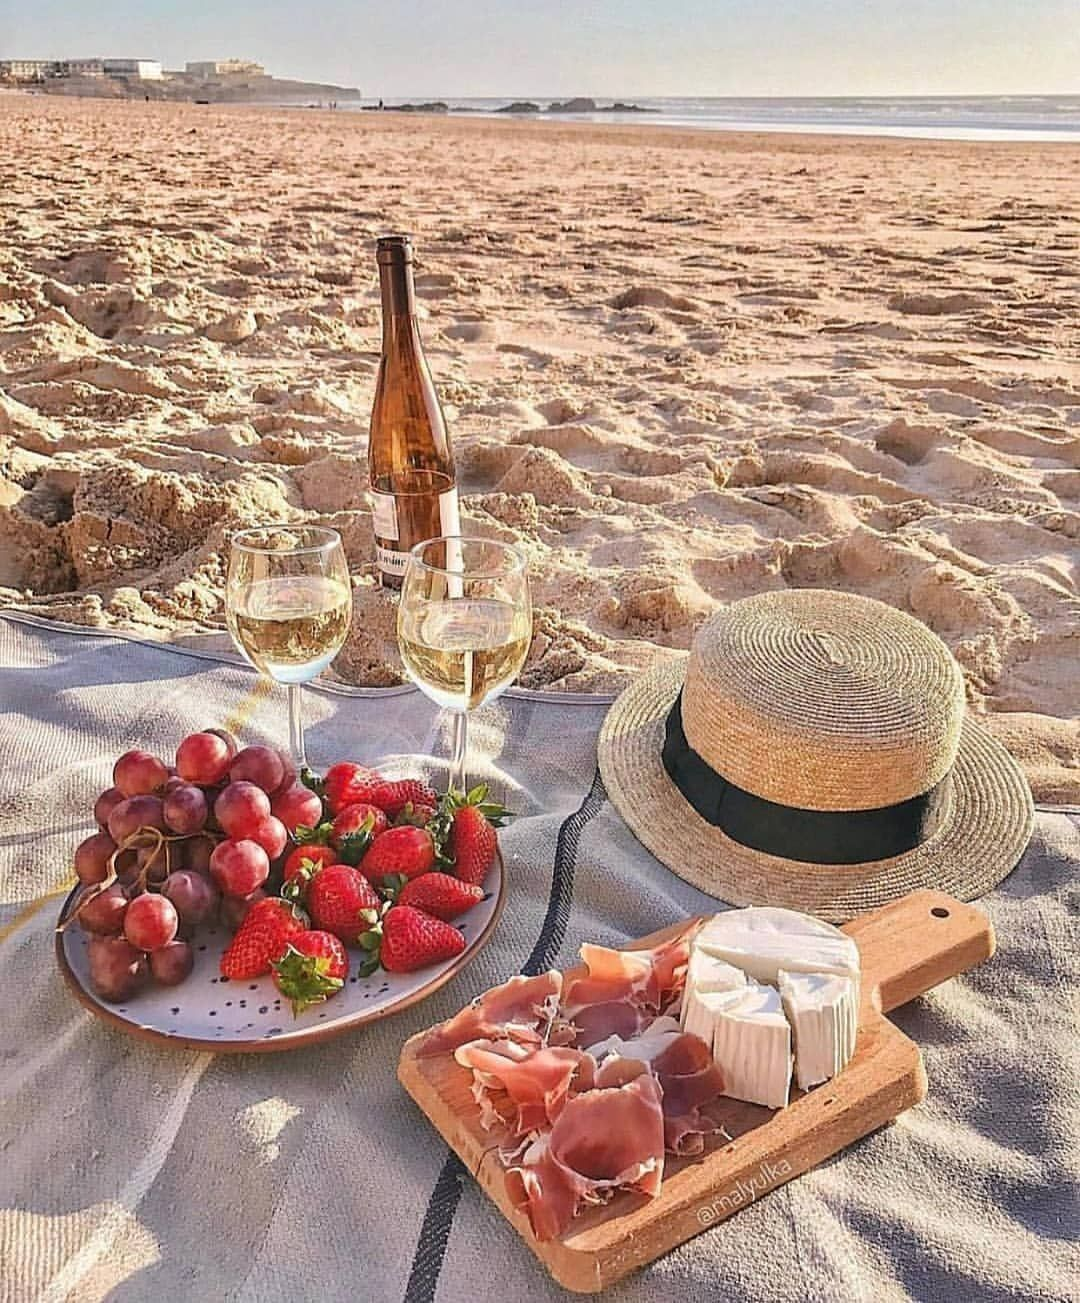 CHARCUTERIE AND WINE ON MONOCHROMATIC SANDS